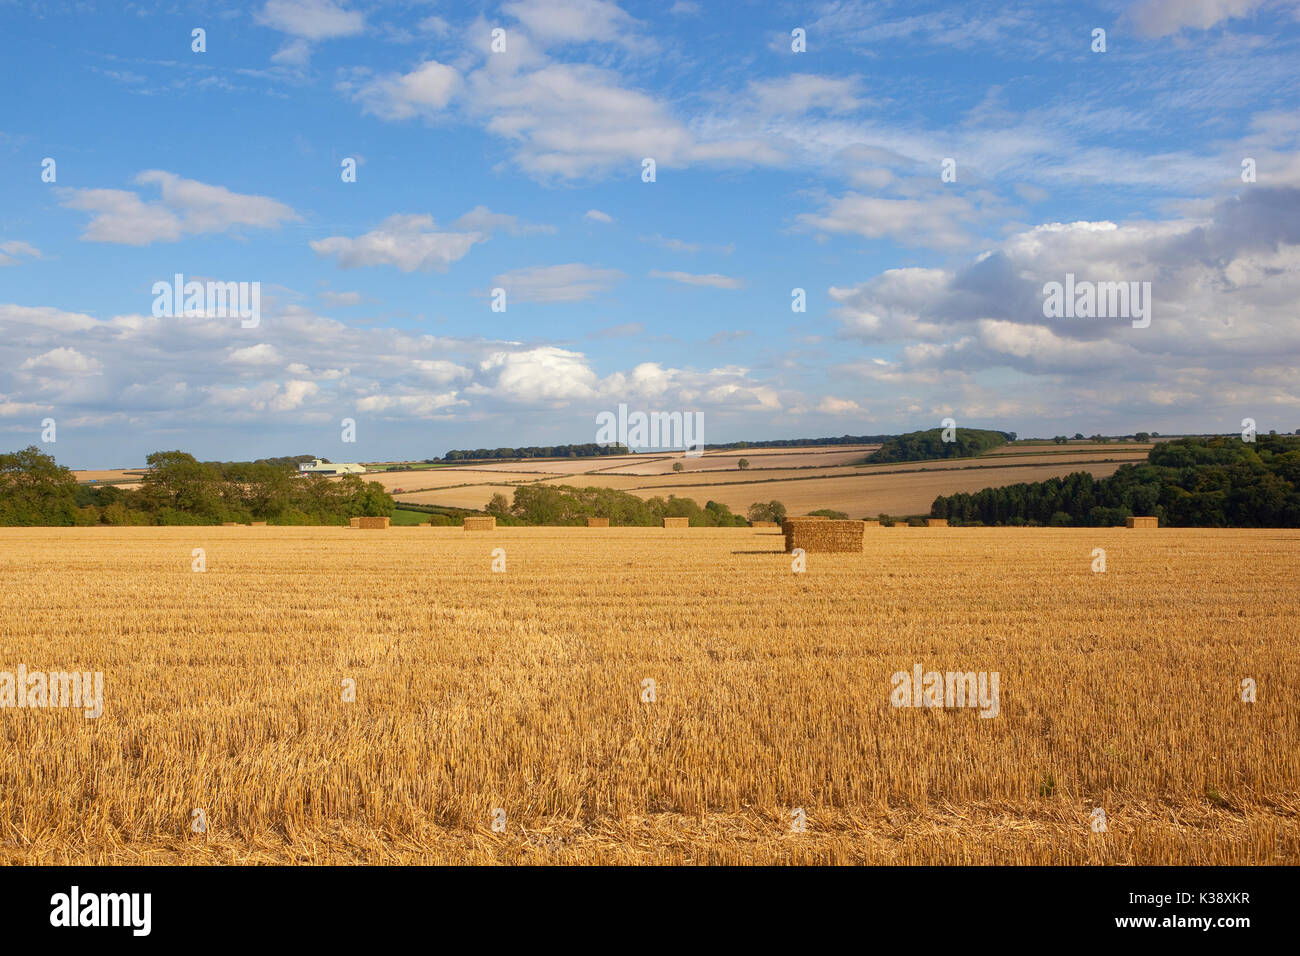 Square Straw Bales In A Harvested Wheat Field With Hills